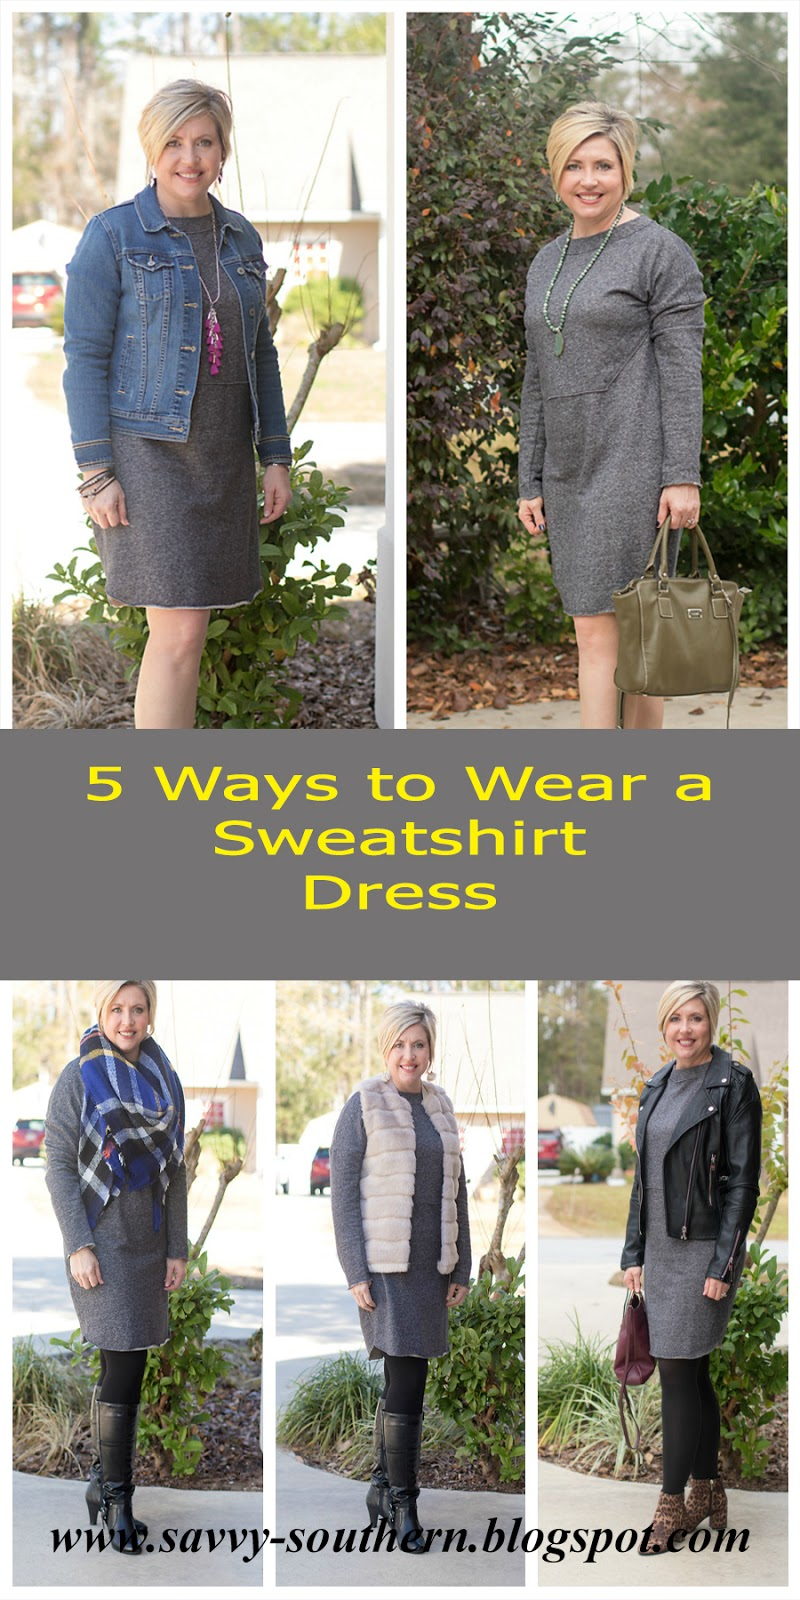 5 Ways to Wear a Sweatshirt Dress